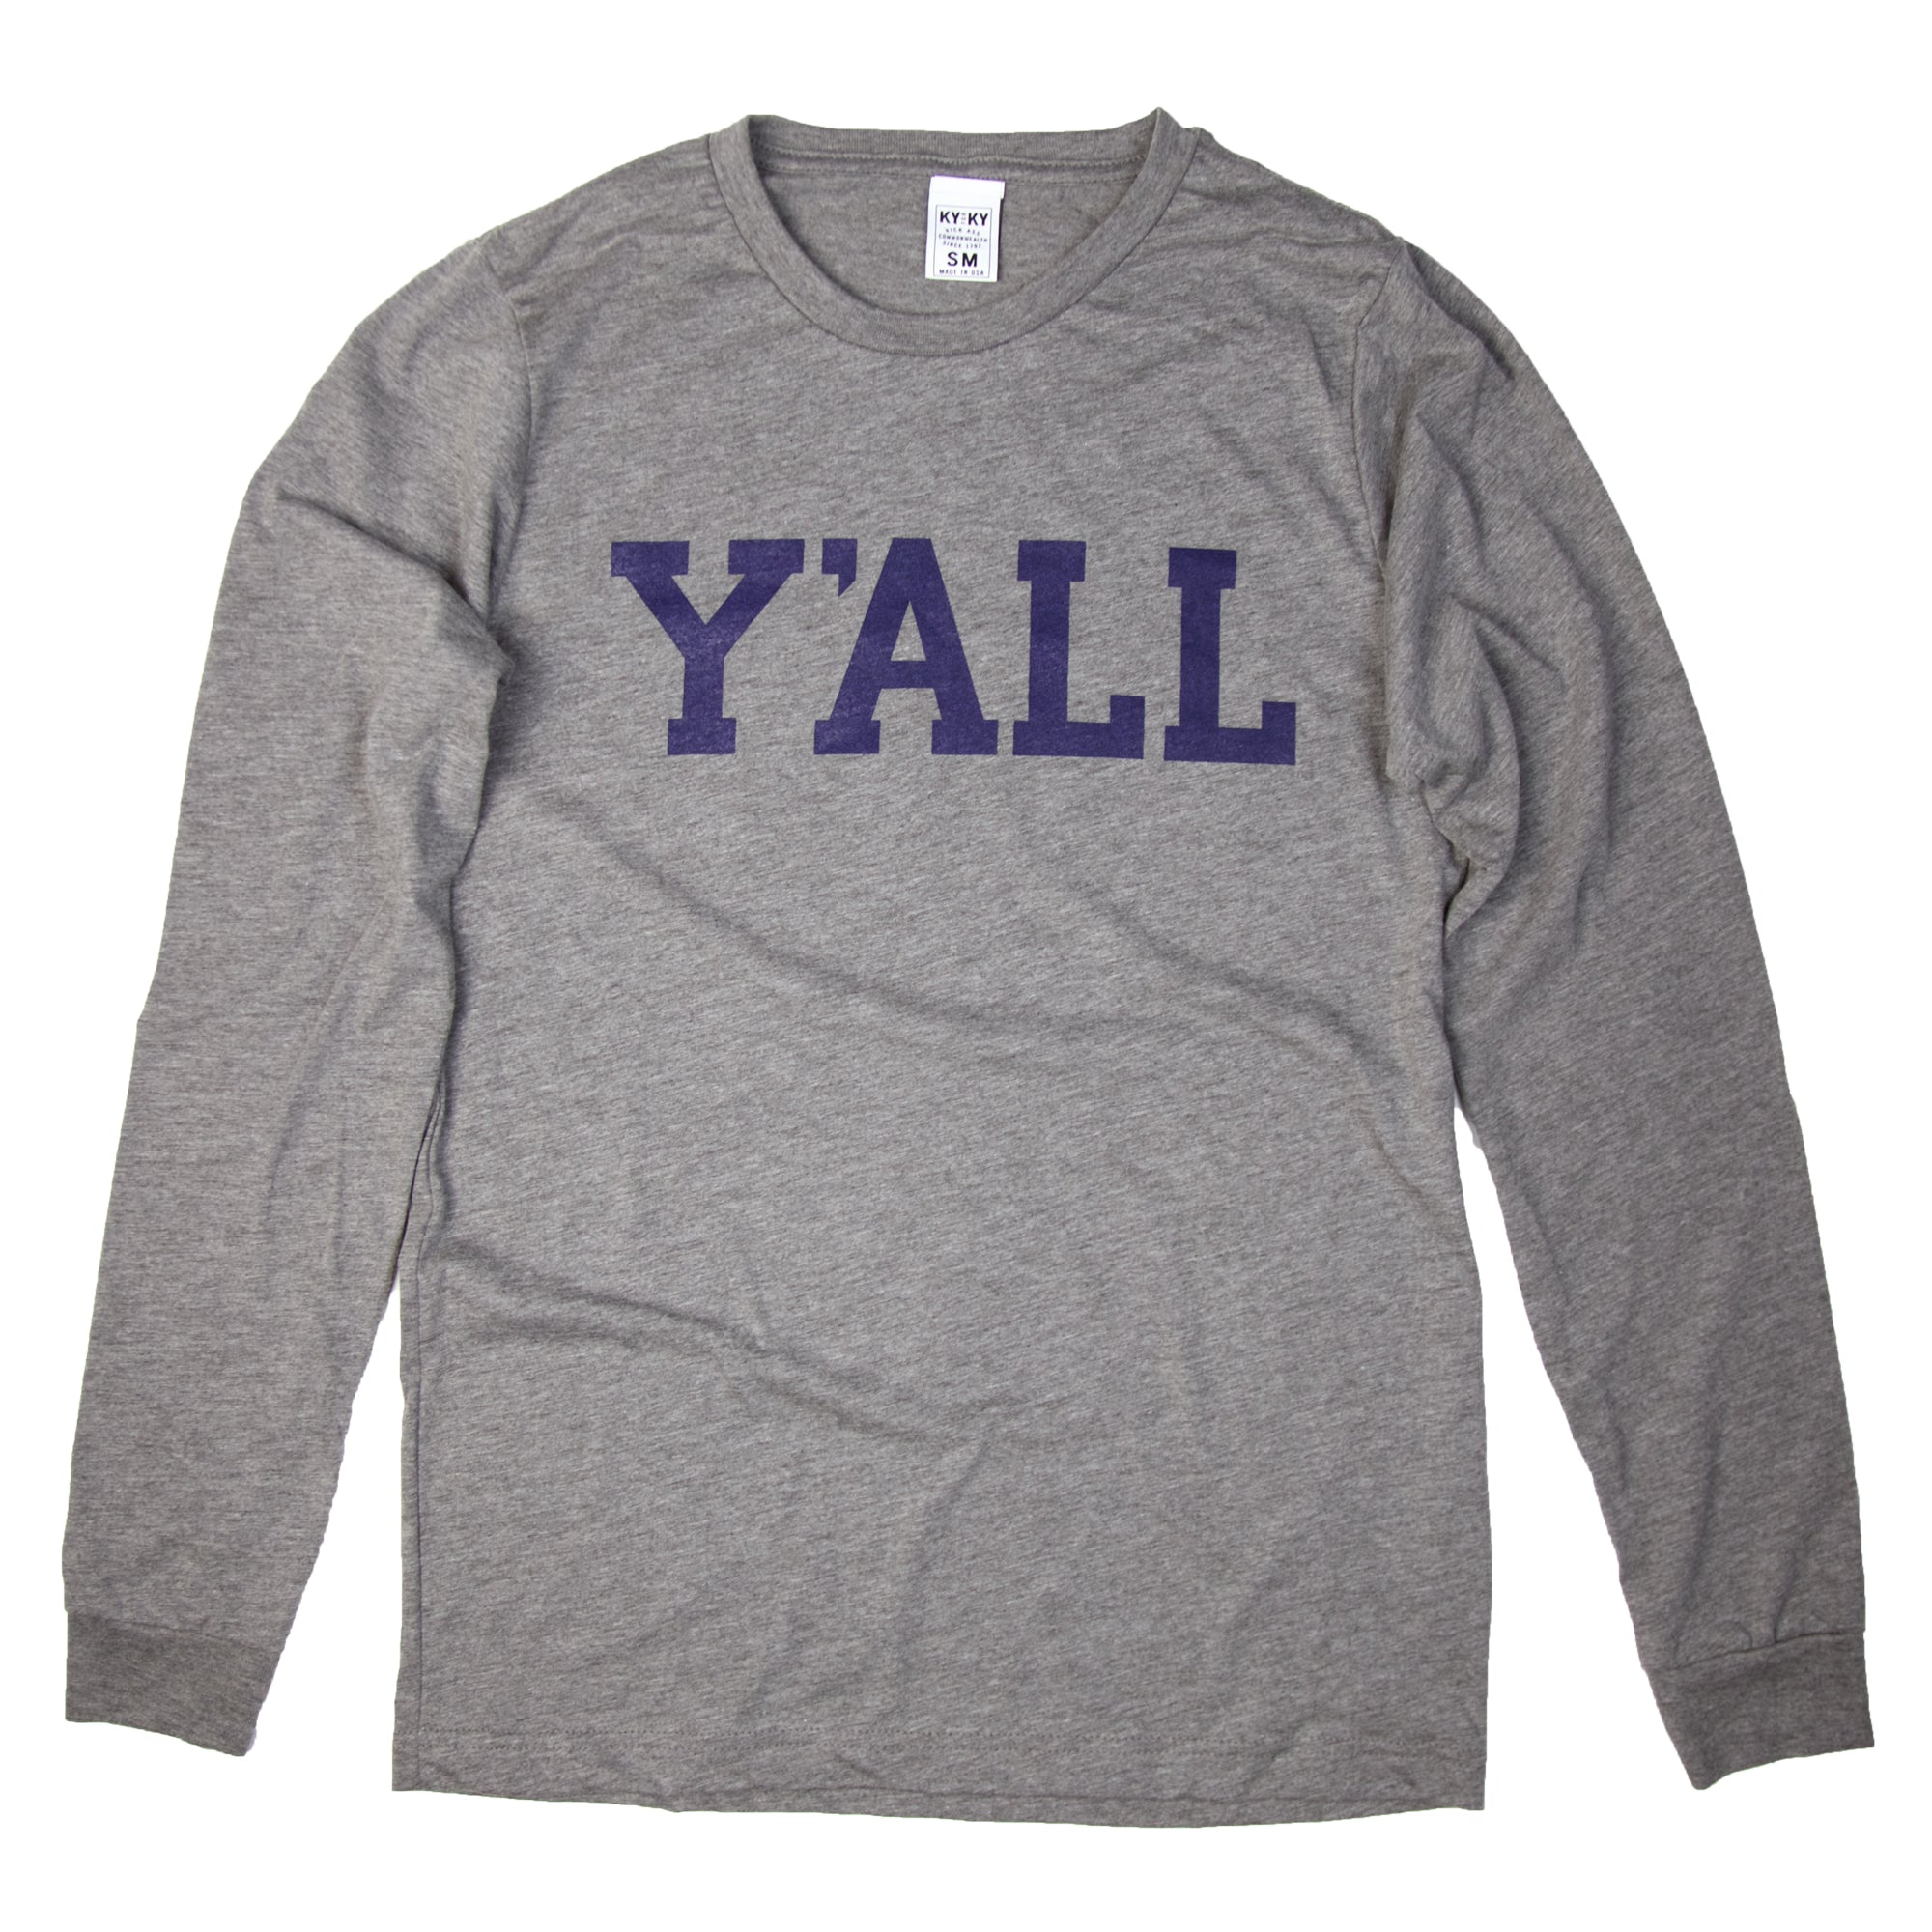 Long Sleeve Y'ALL Shirt (Grey)-T-Shirt-KY for KY Store